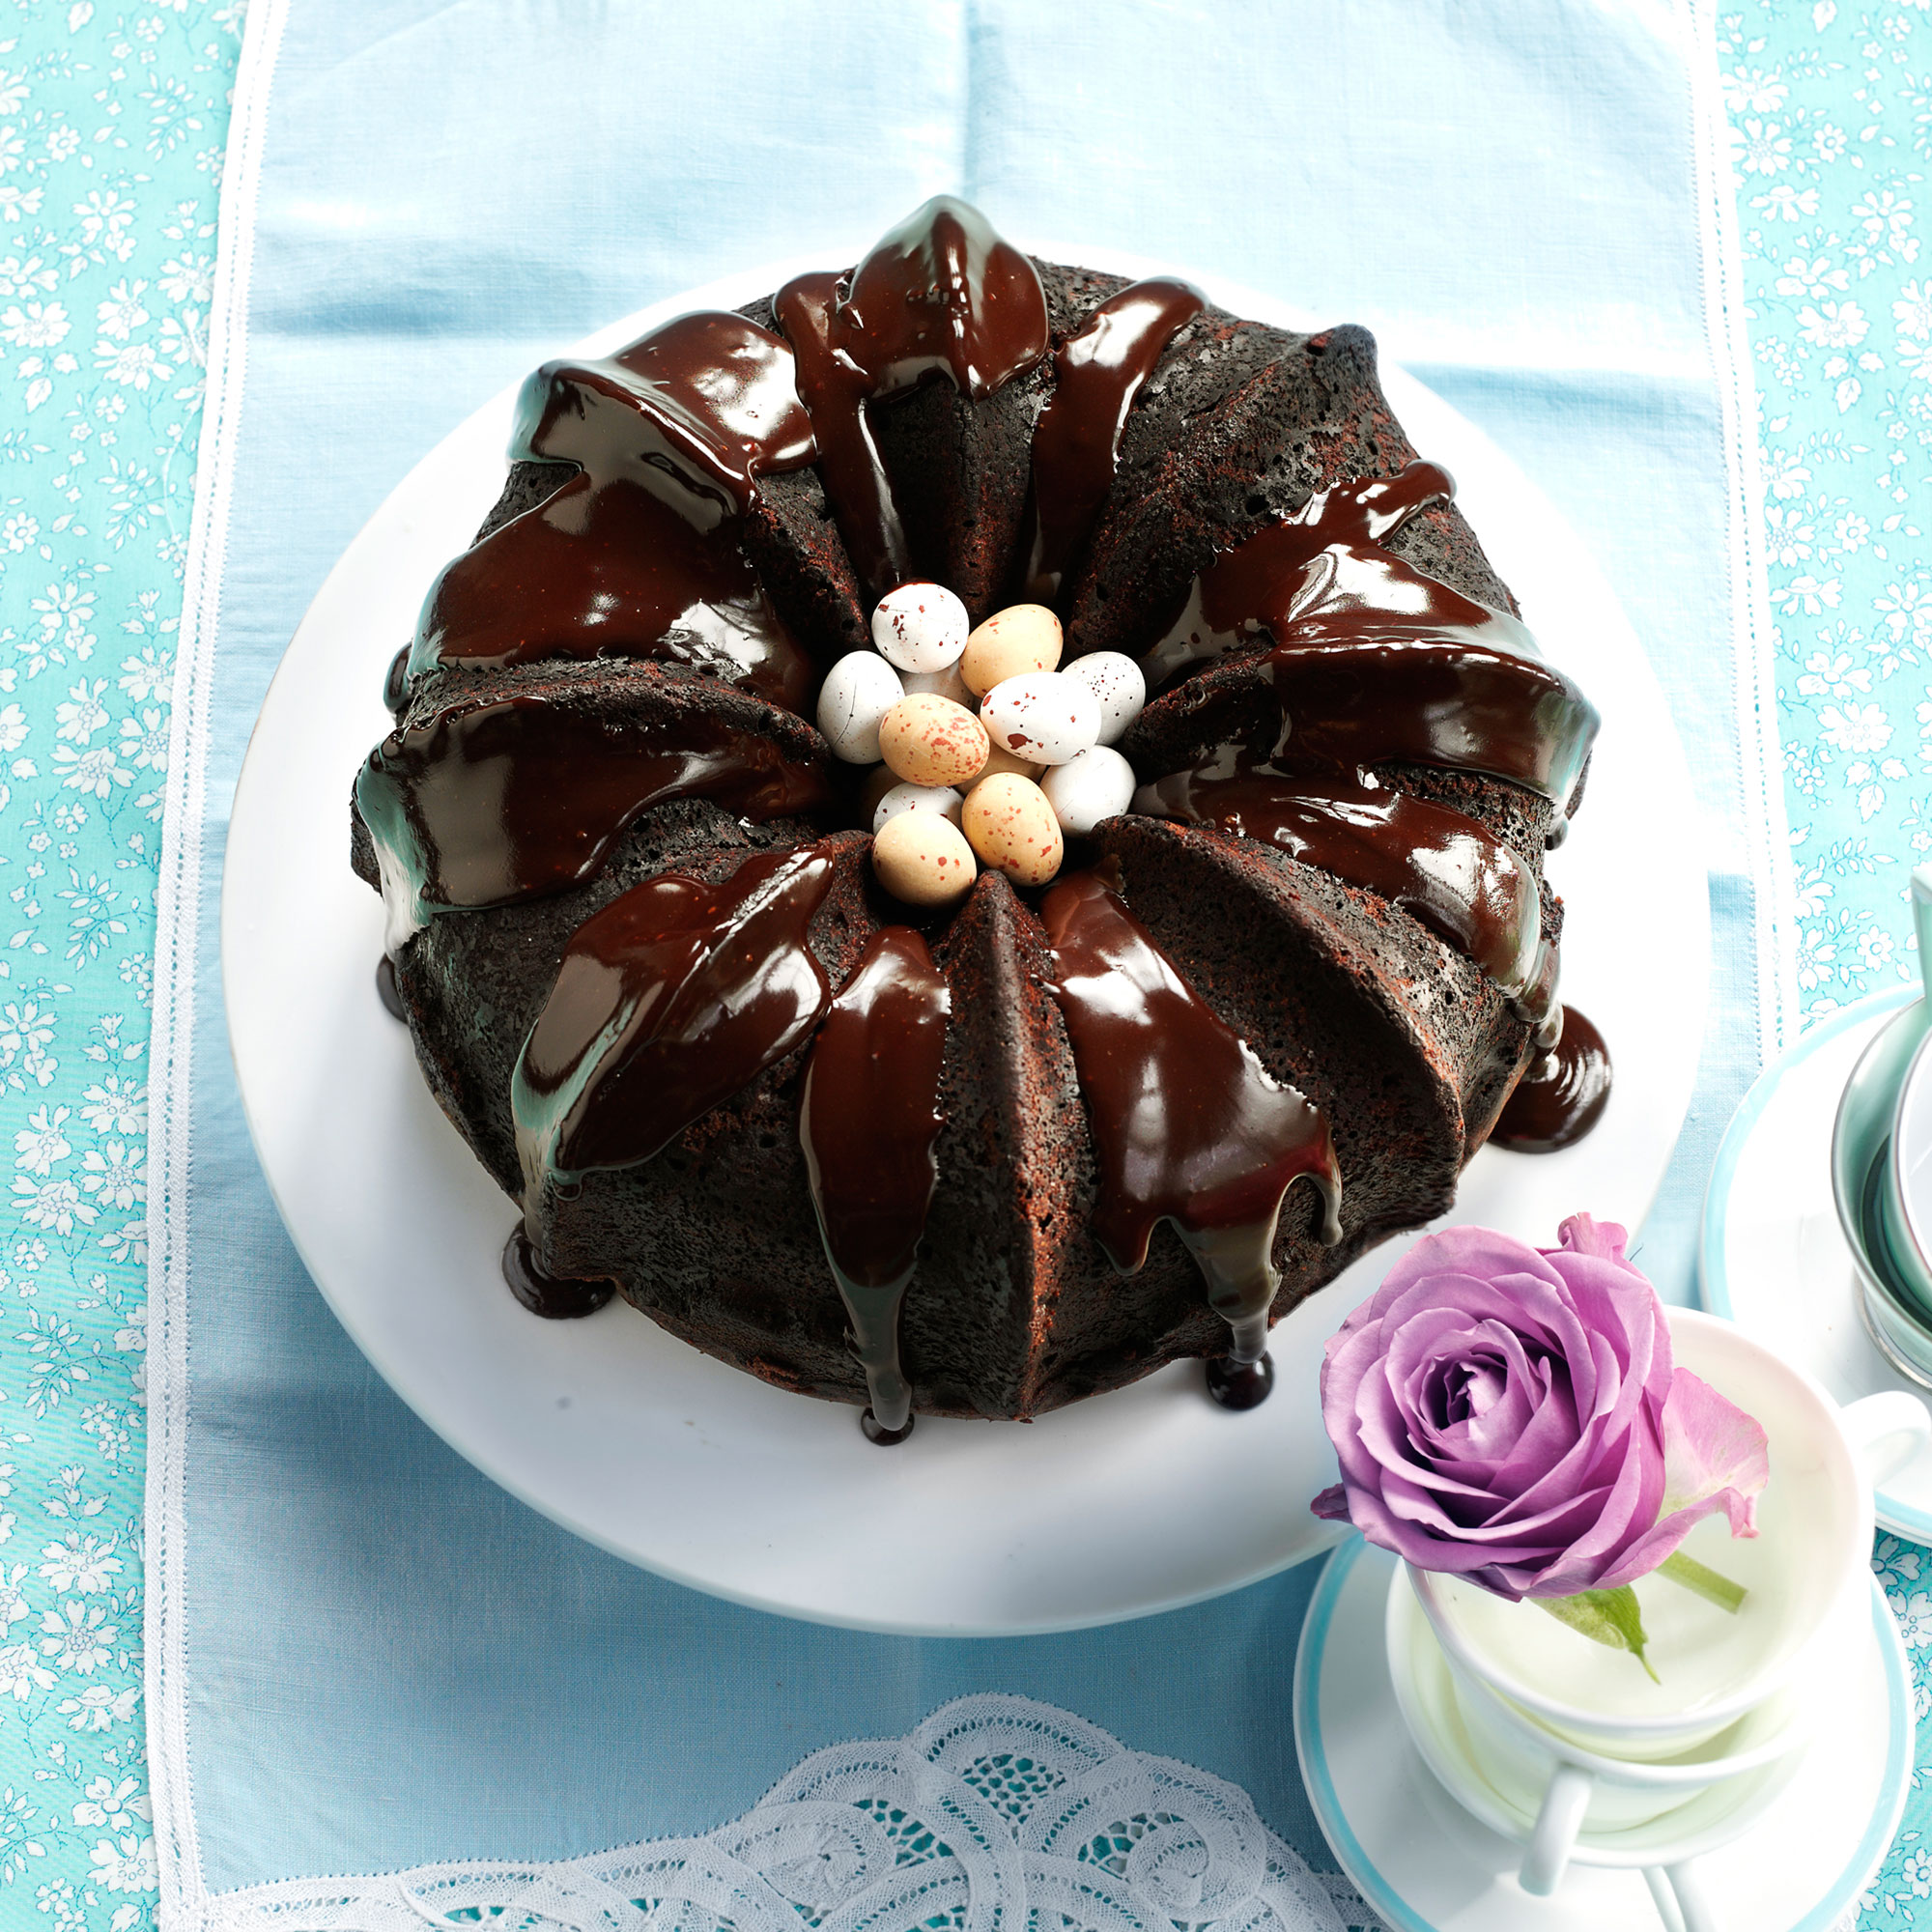 Chocolate Ginger Bundt Cake